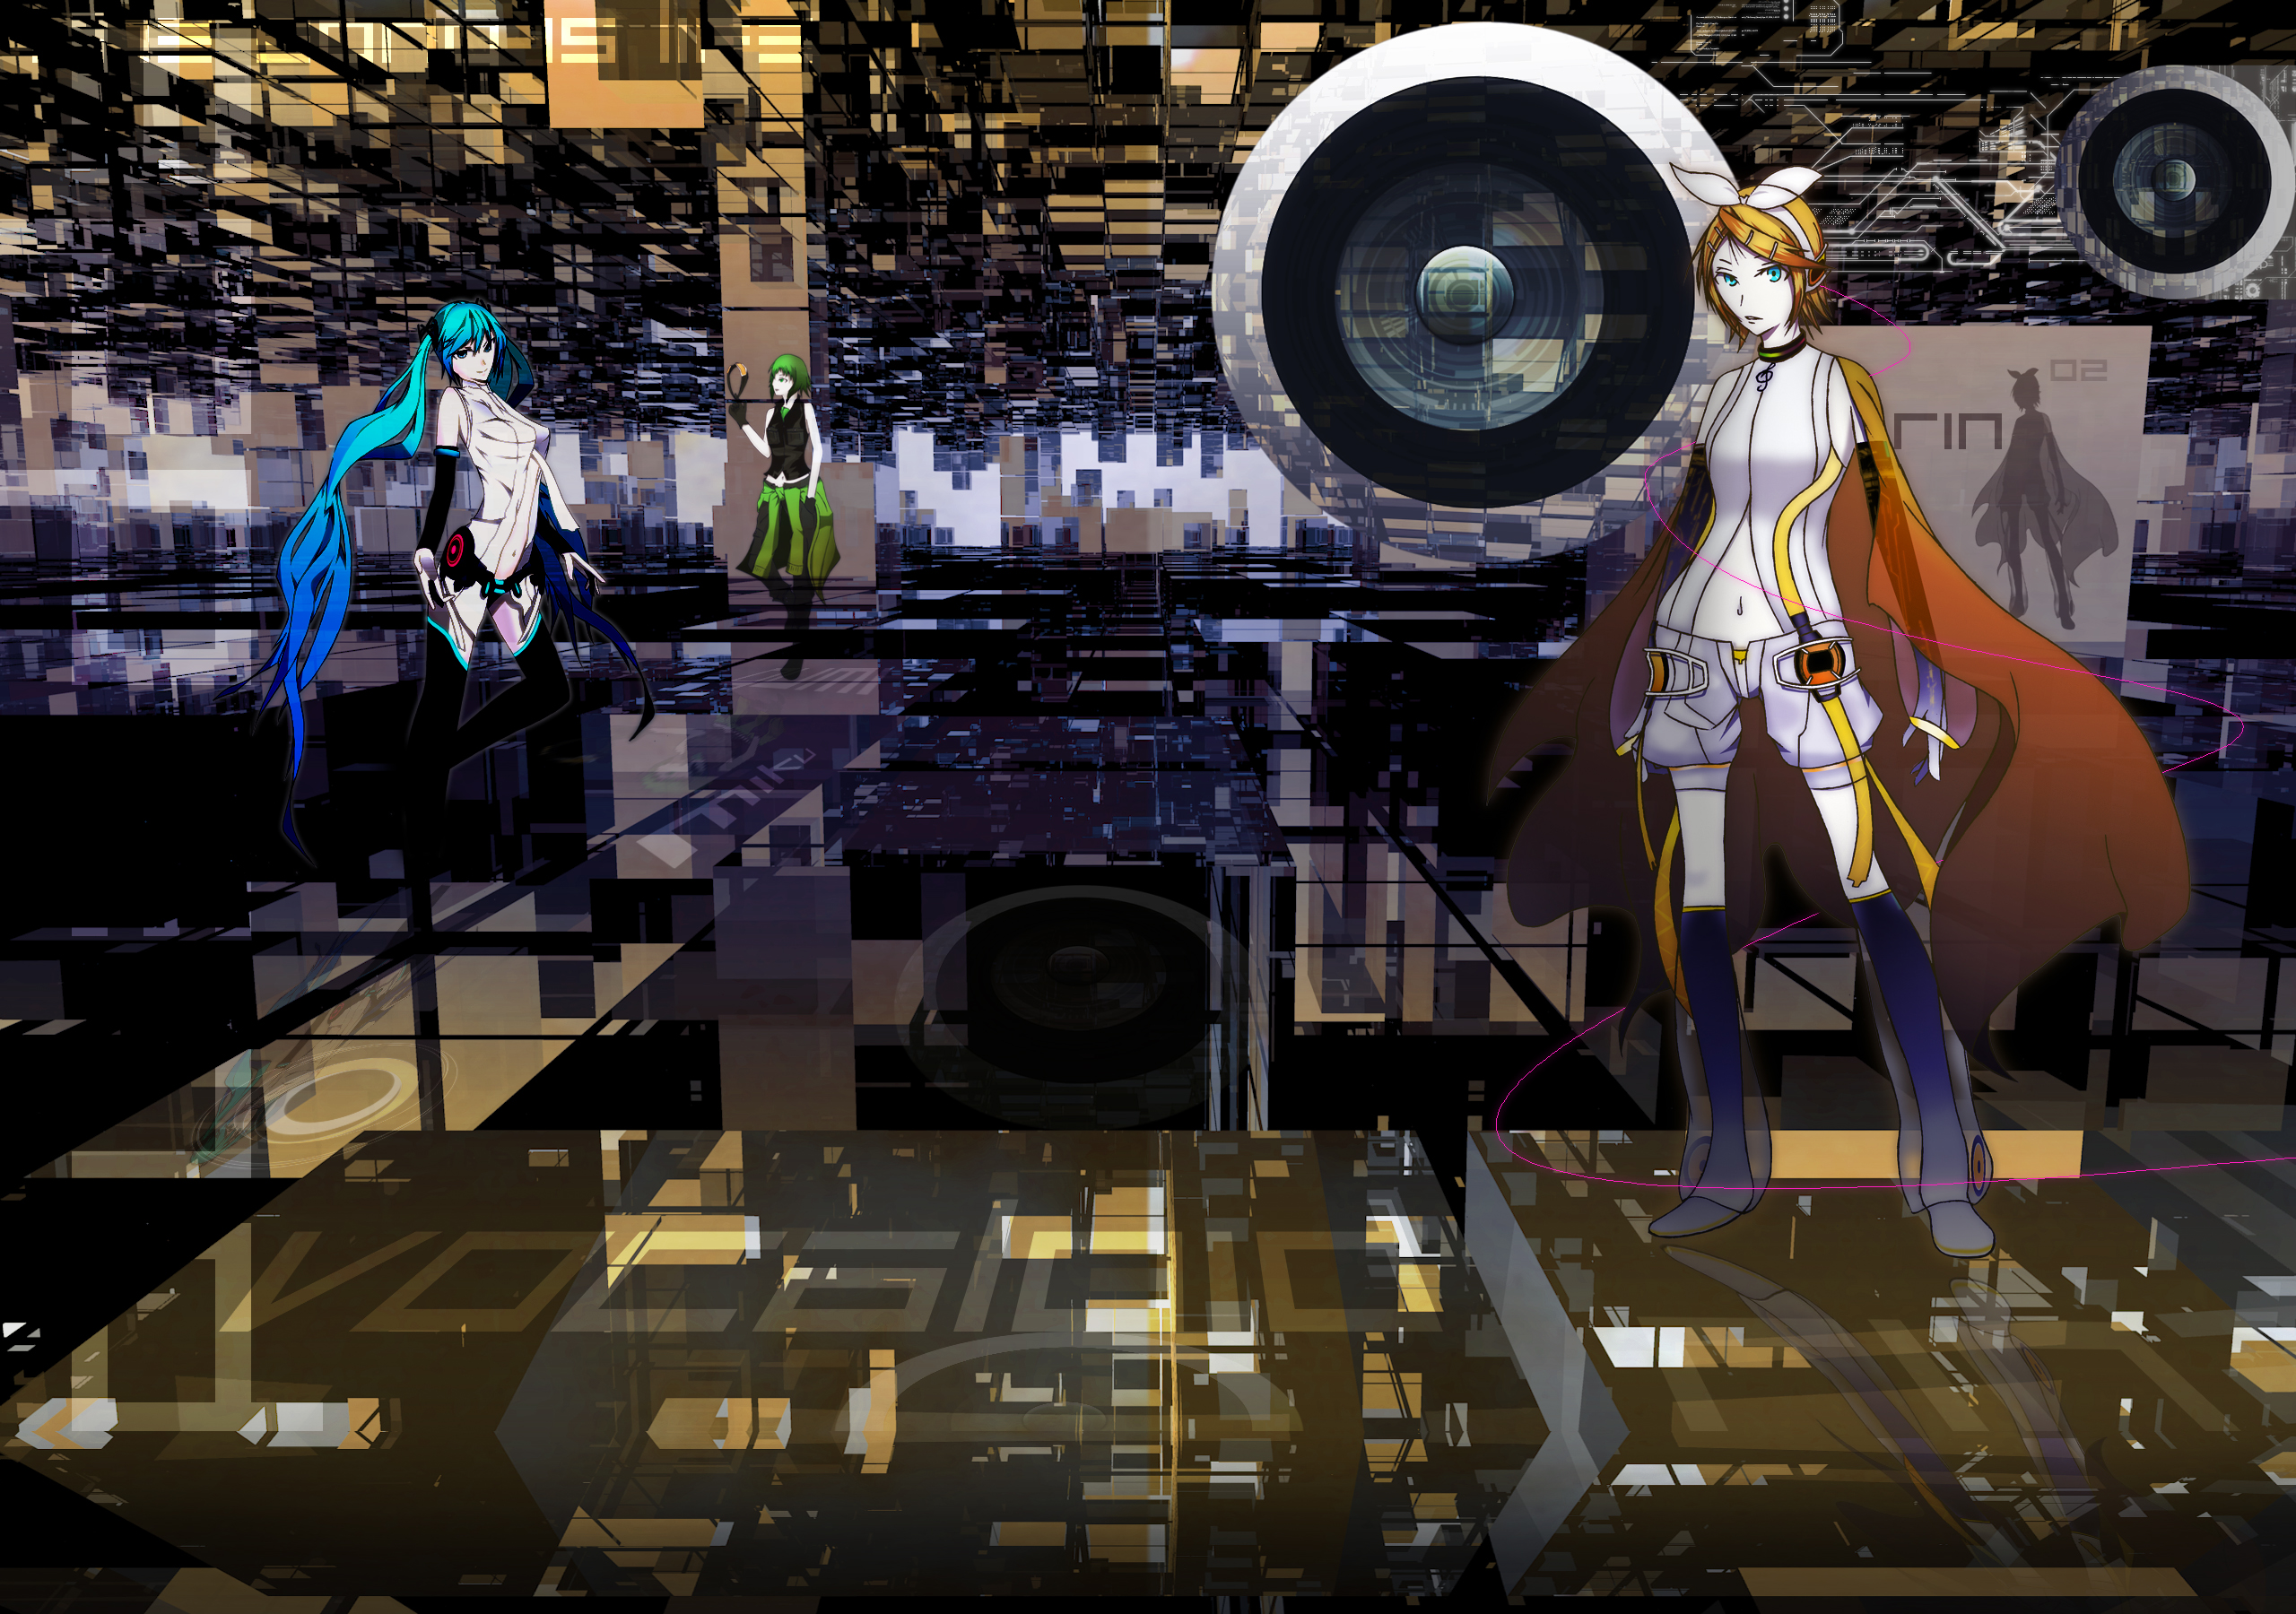 Vocaloid's Sound Mirror World by 一撫@アイス食べたい